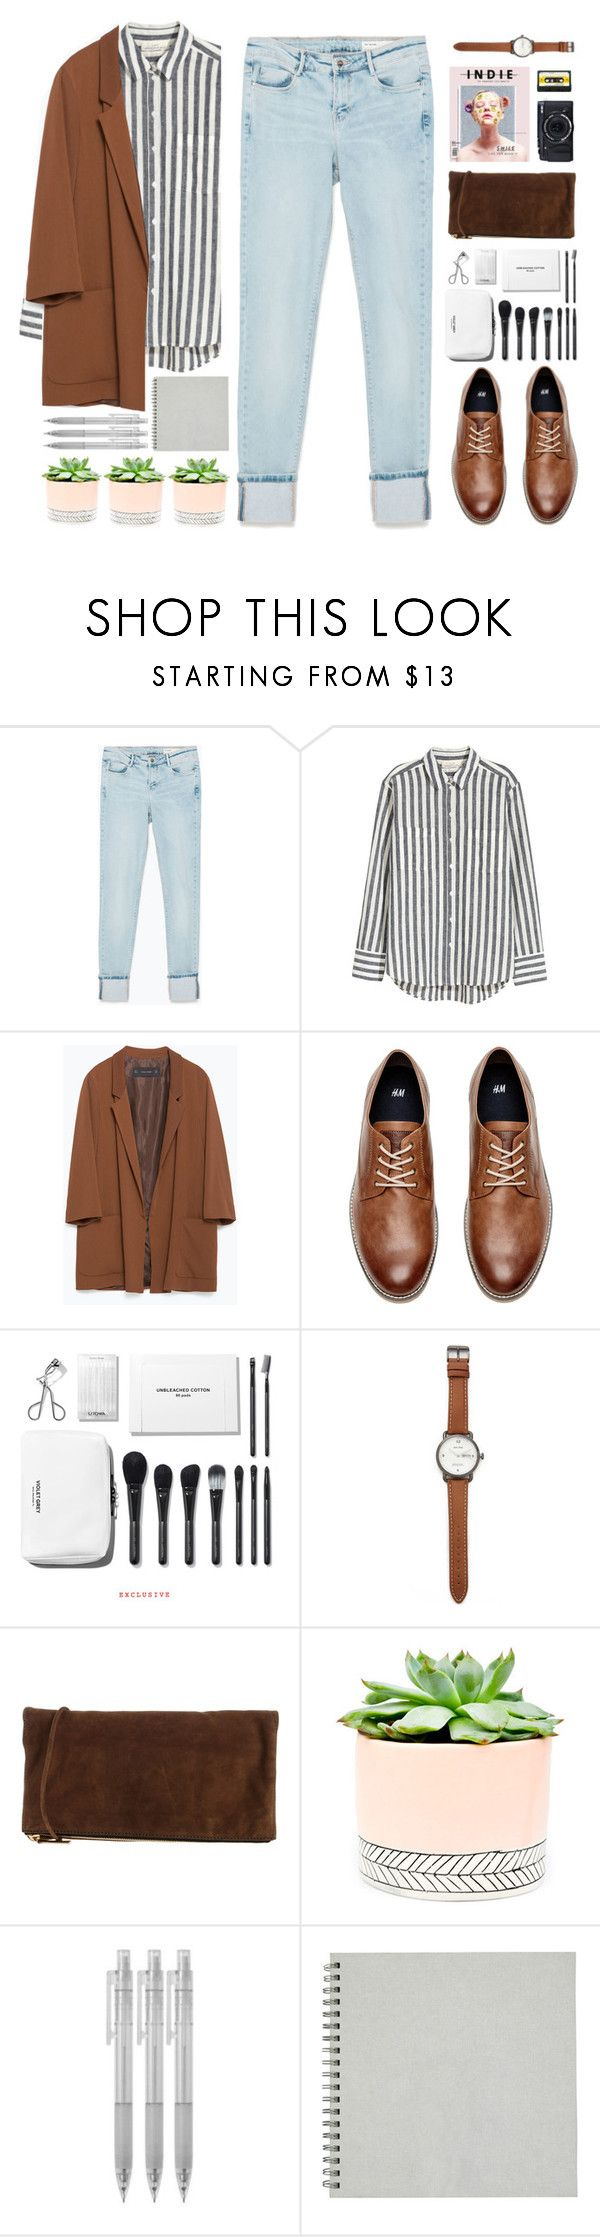 """bittersweet memories"" by la-lunar-eclipse on Polyvore featuring Zara, H&M, Fujifilm, Jack Spade, Dsquared2, Hostess, Muji and vintage"